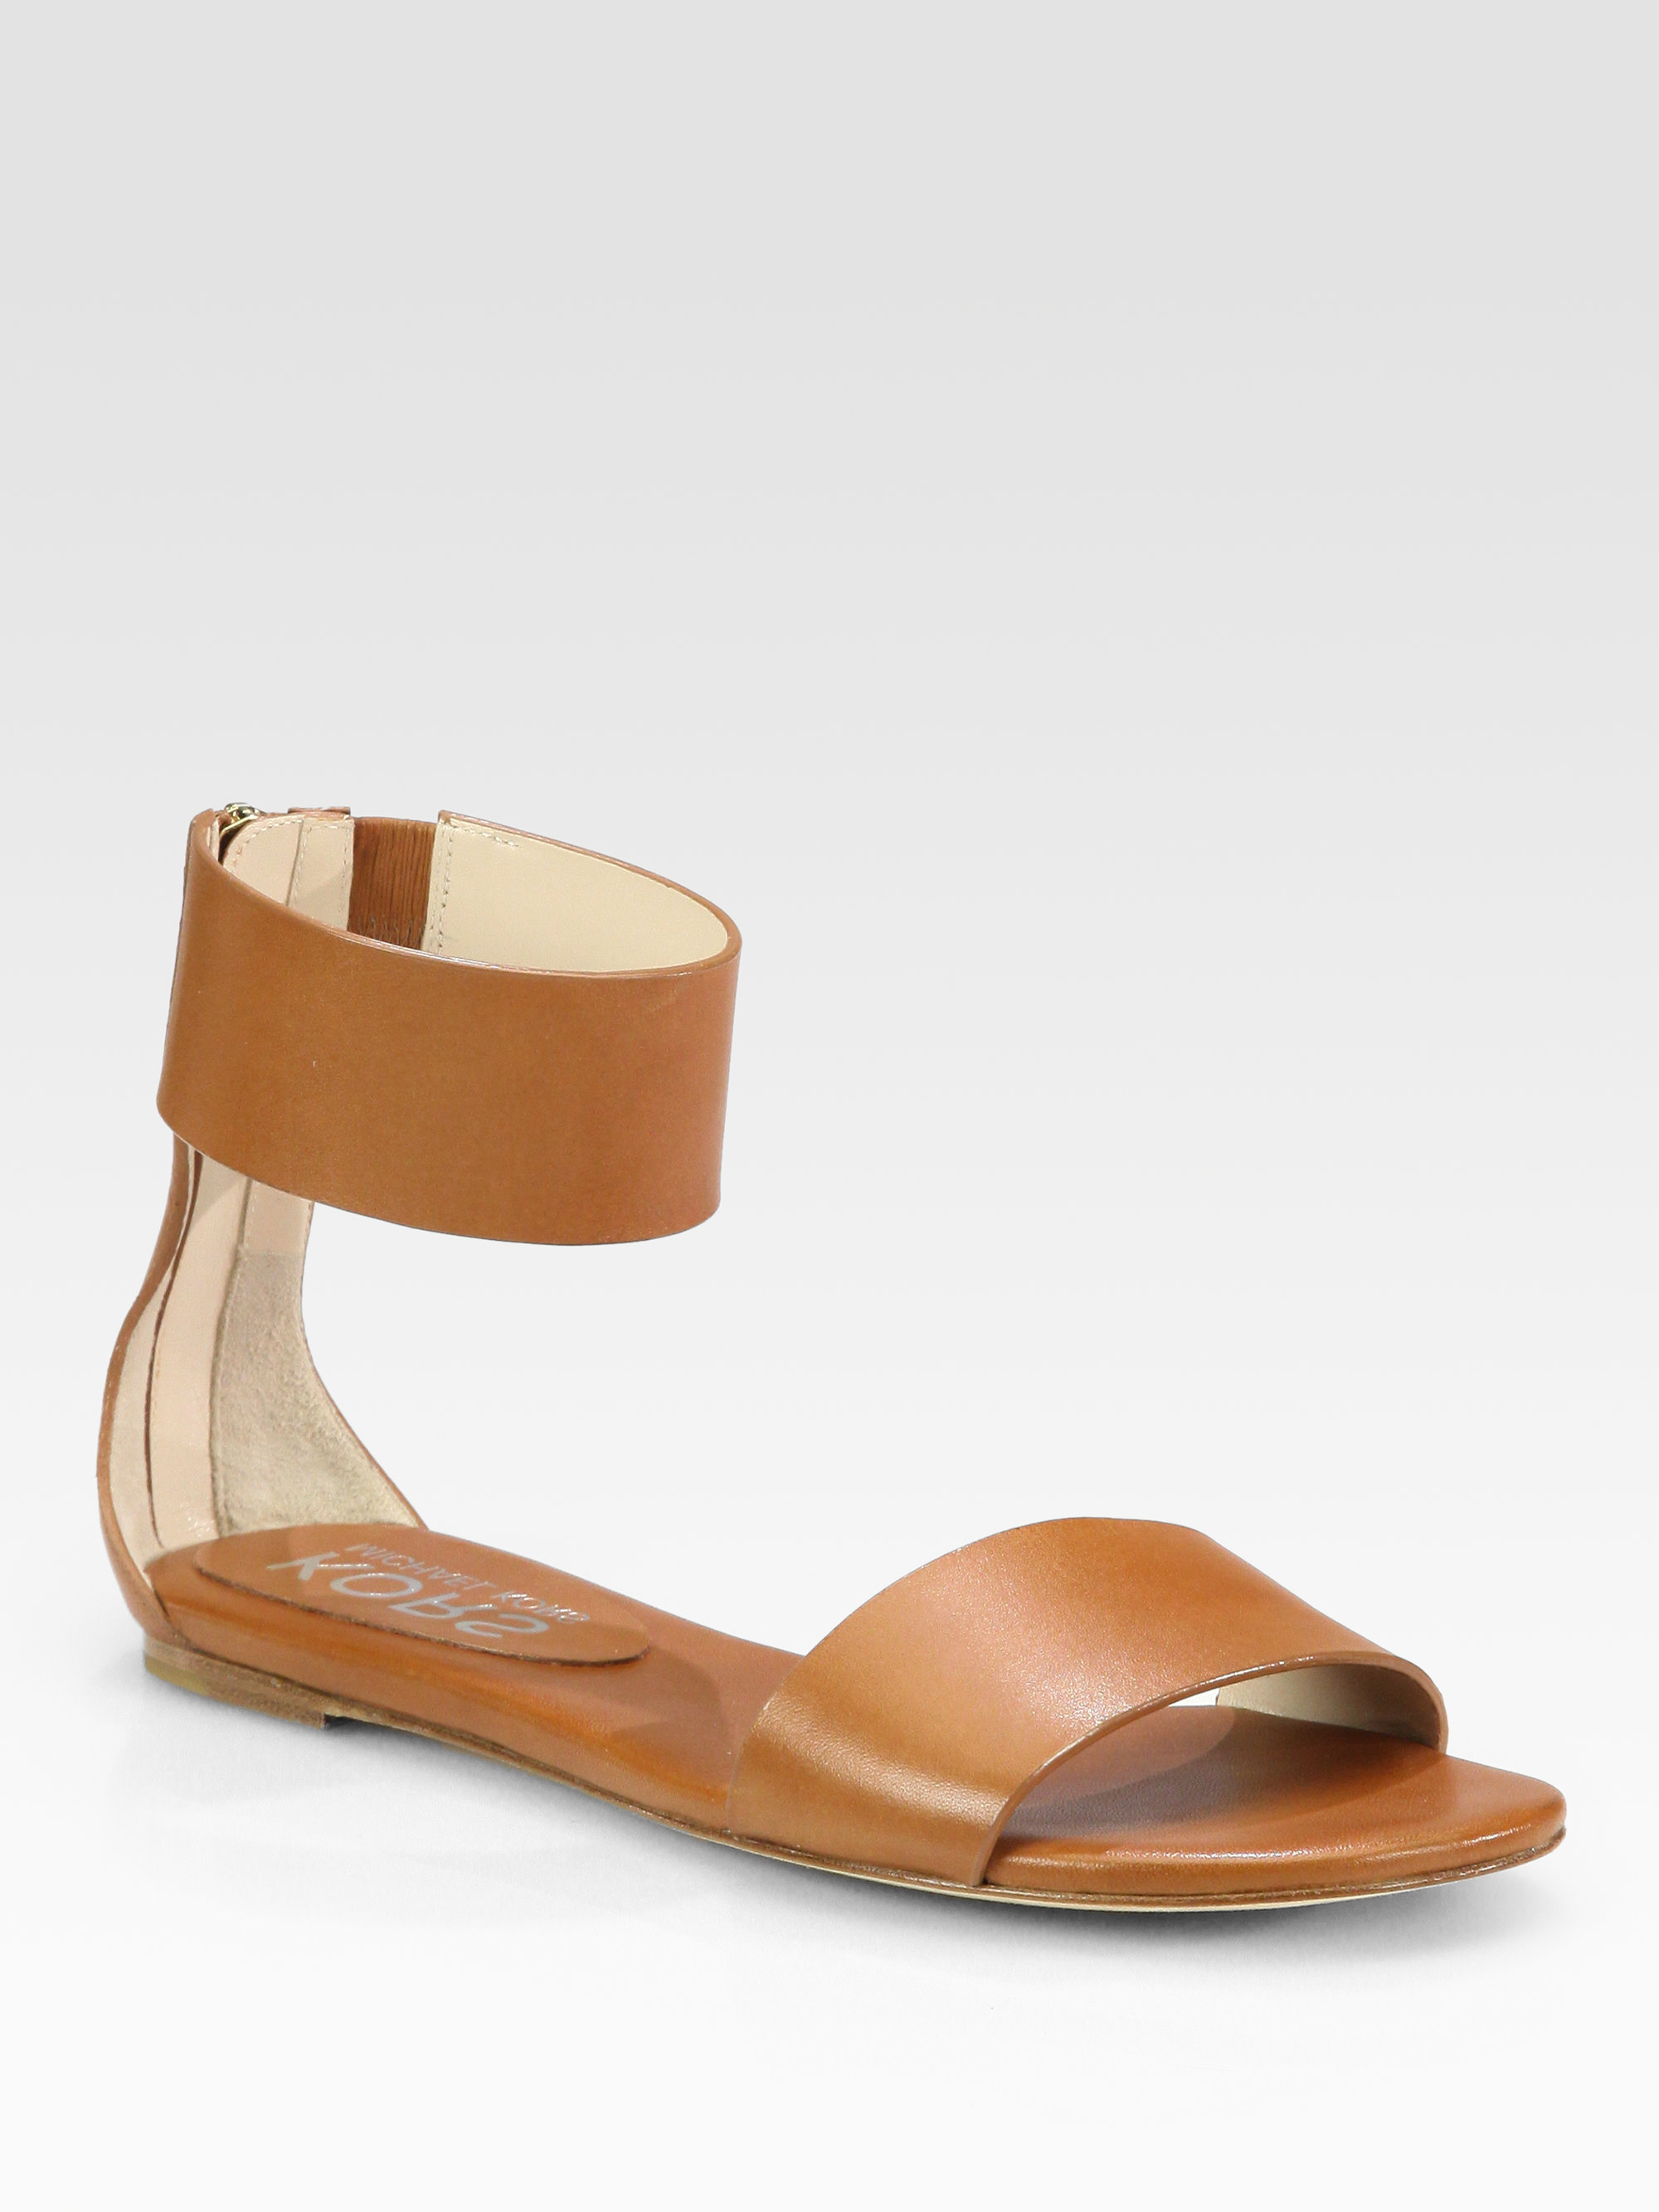 feac3c7a896 Lyst - Kors by Michael Kors Ava Leather Ankle Strap Sandals in Brown